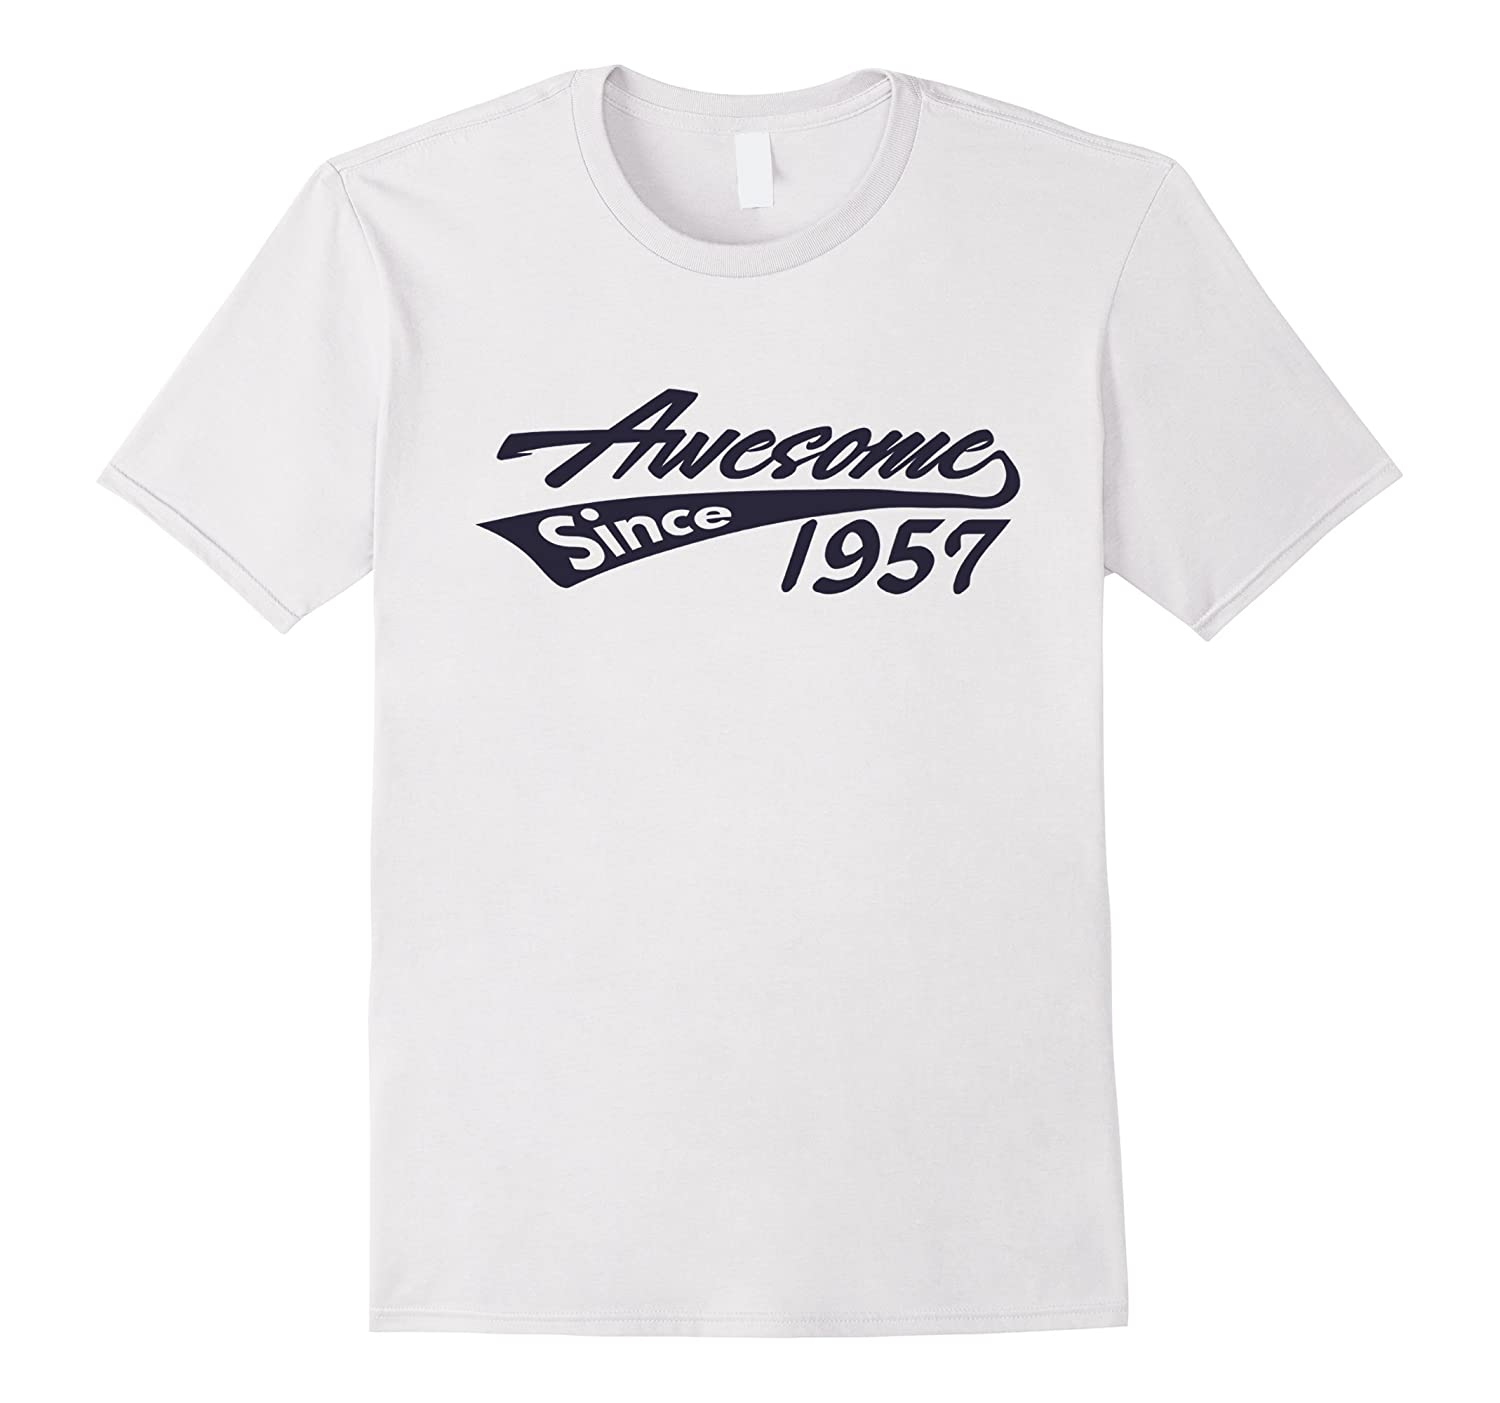 cd761c476 Awesome Since 1957 T-shirt Cool Luxury Fashion Birthday Tee-PL ...